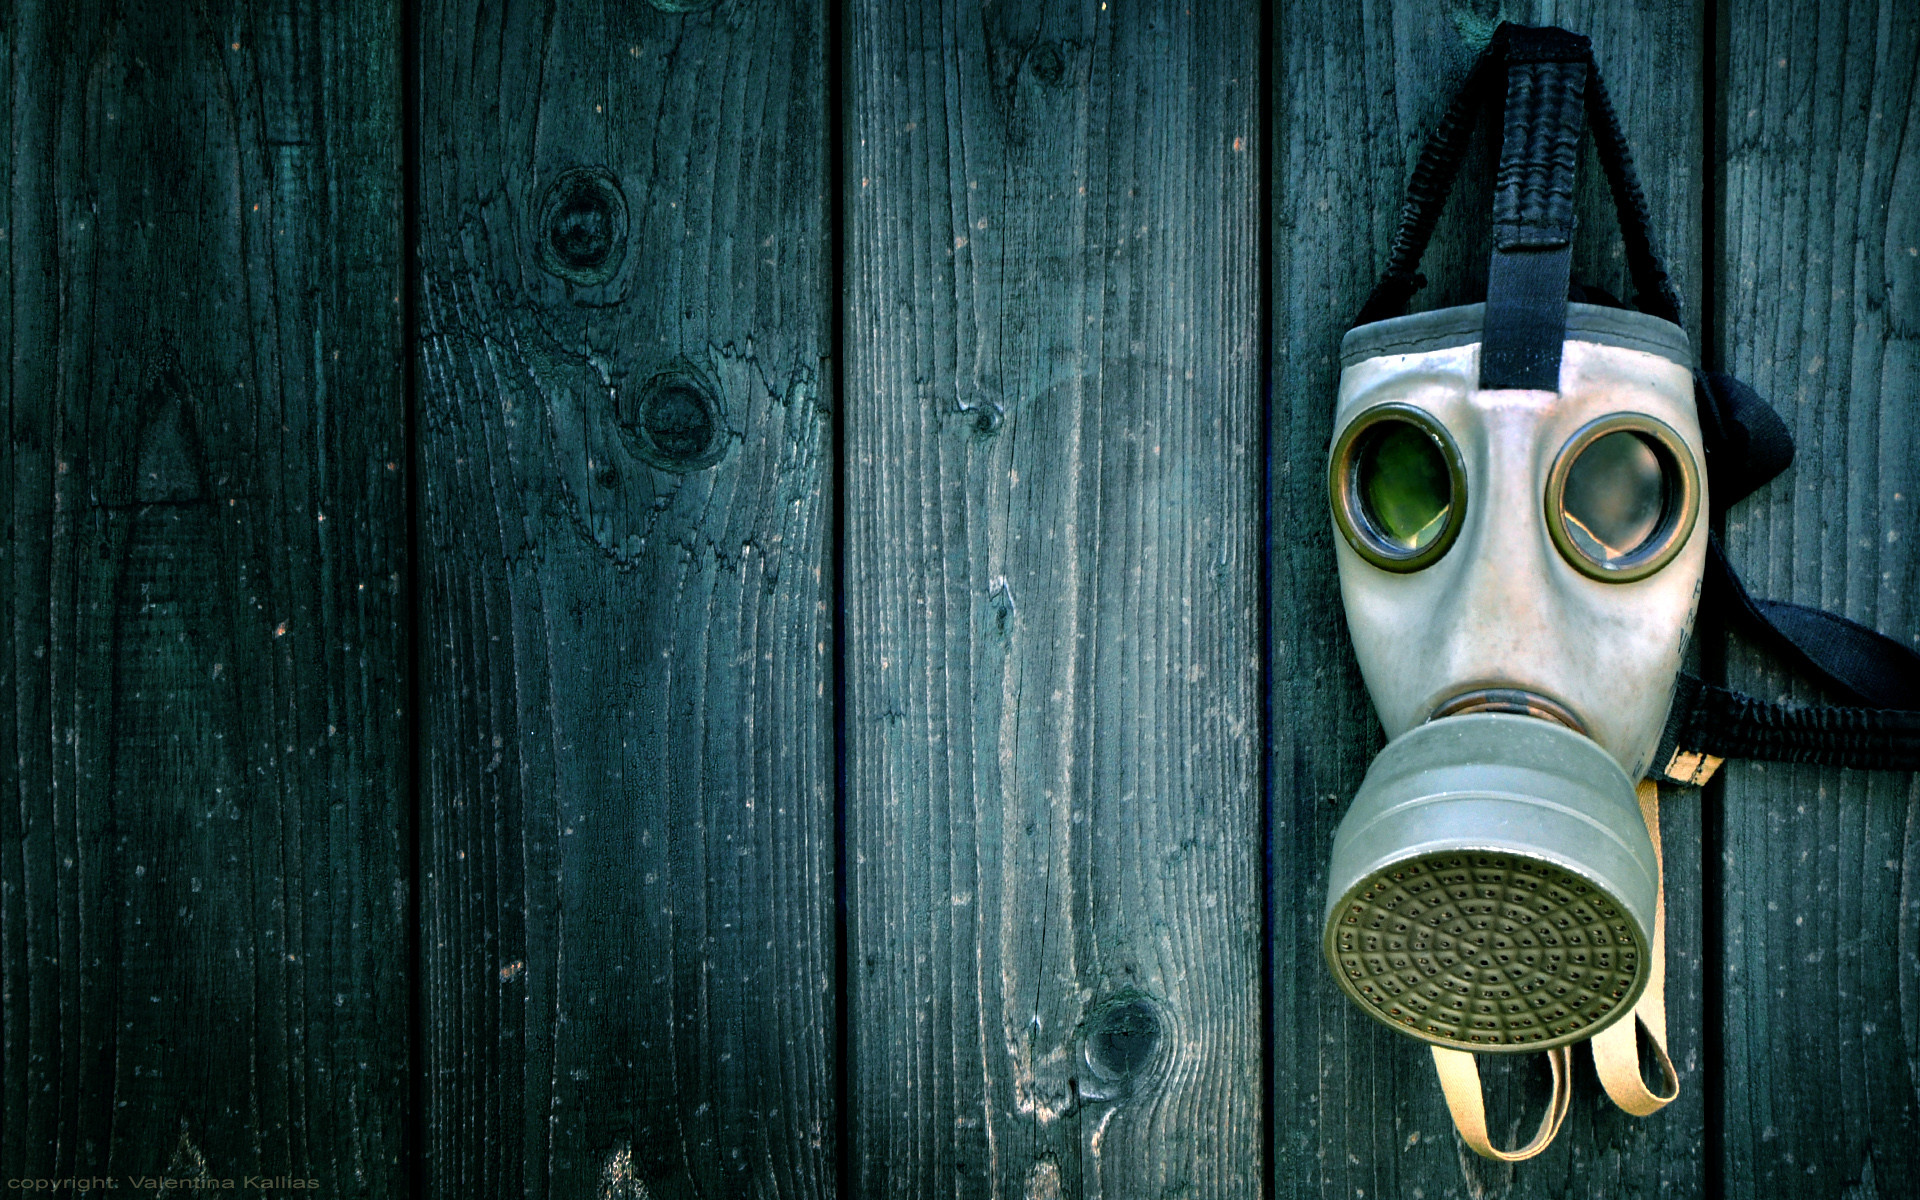 1920x1200 GasMask Wallpaper by ValentinaKallias GasMask Wallpaper by ValentinaKallias